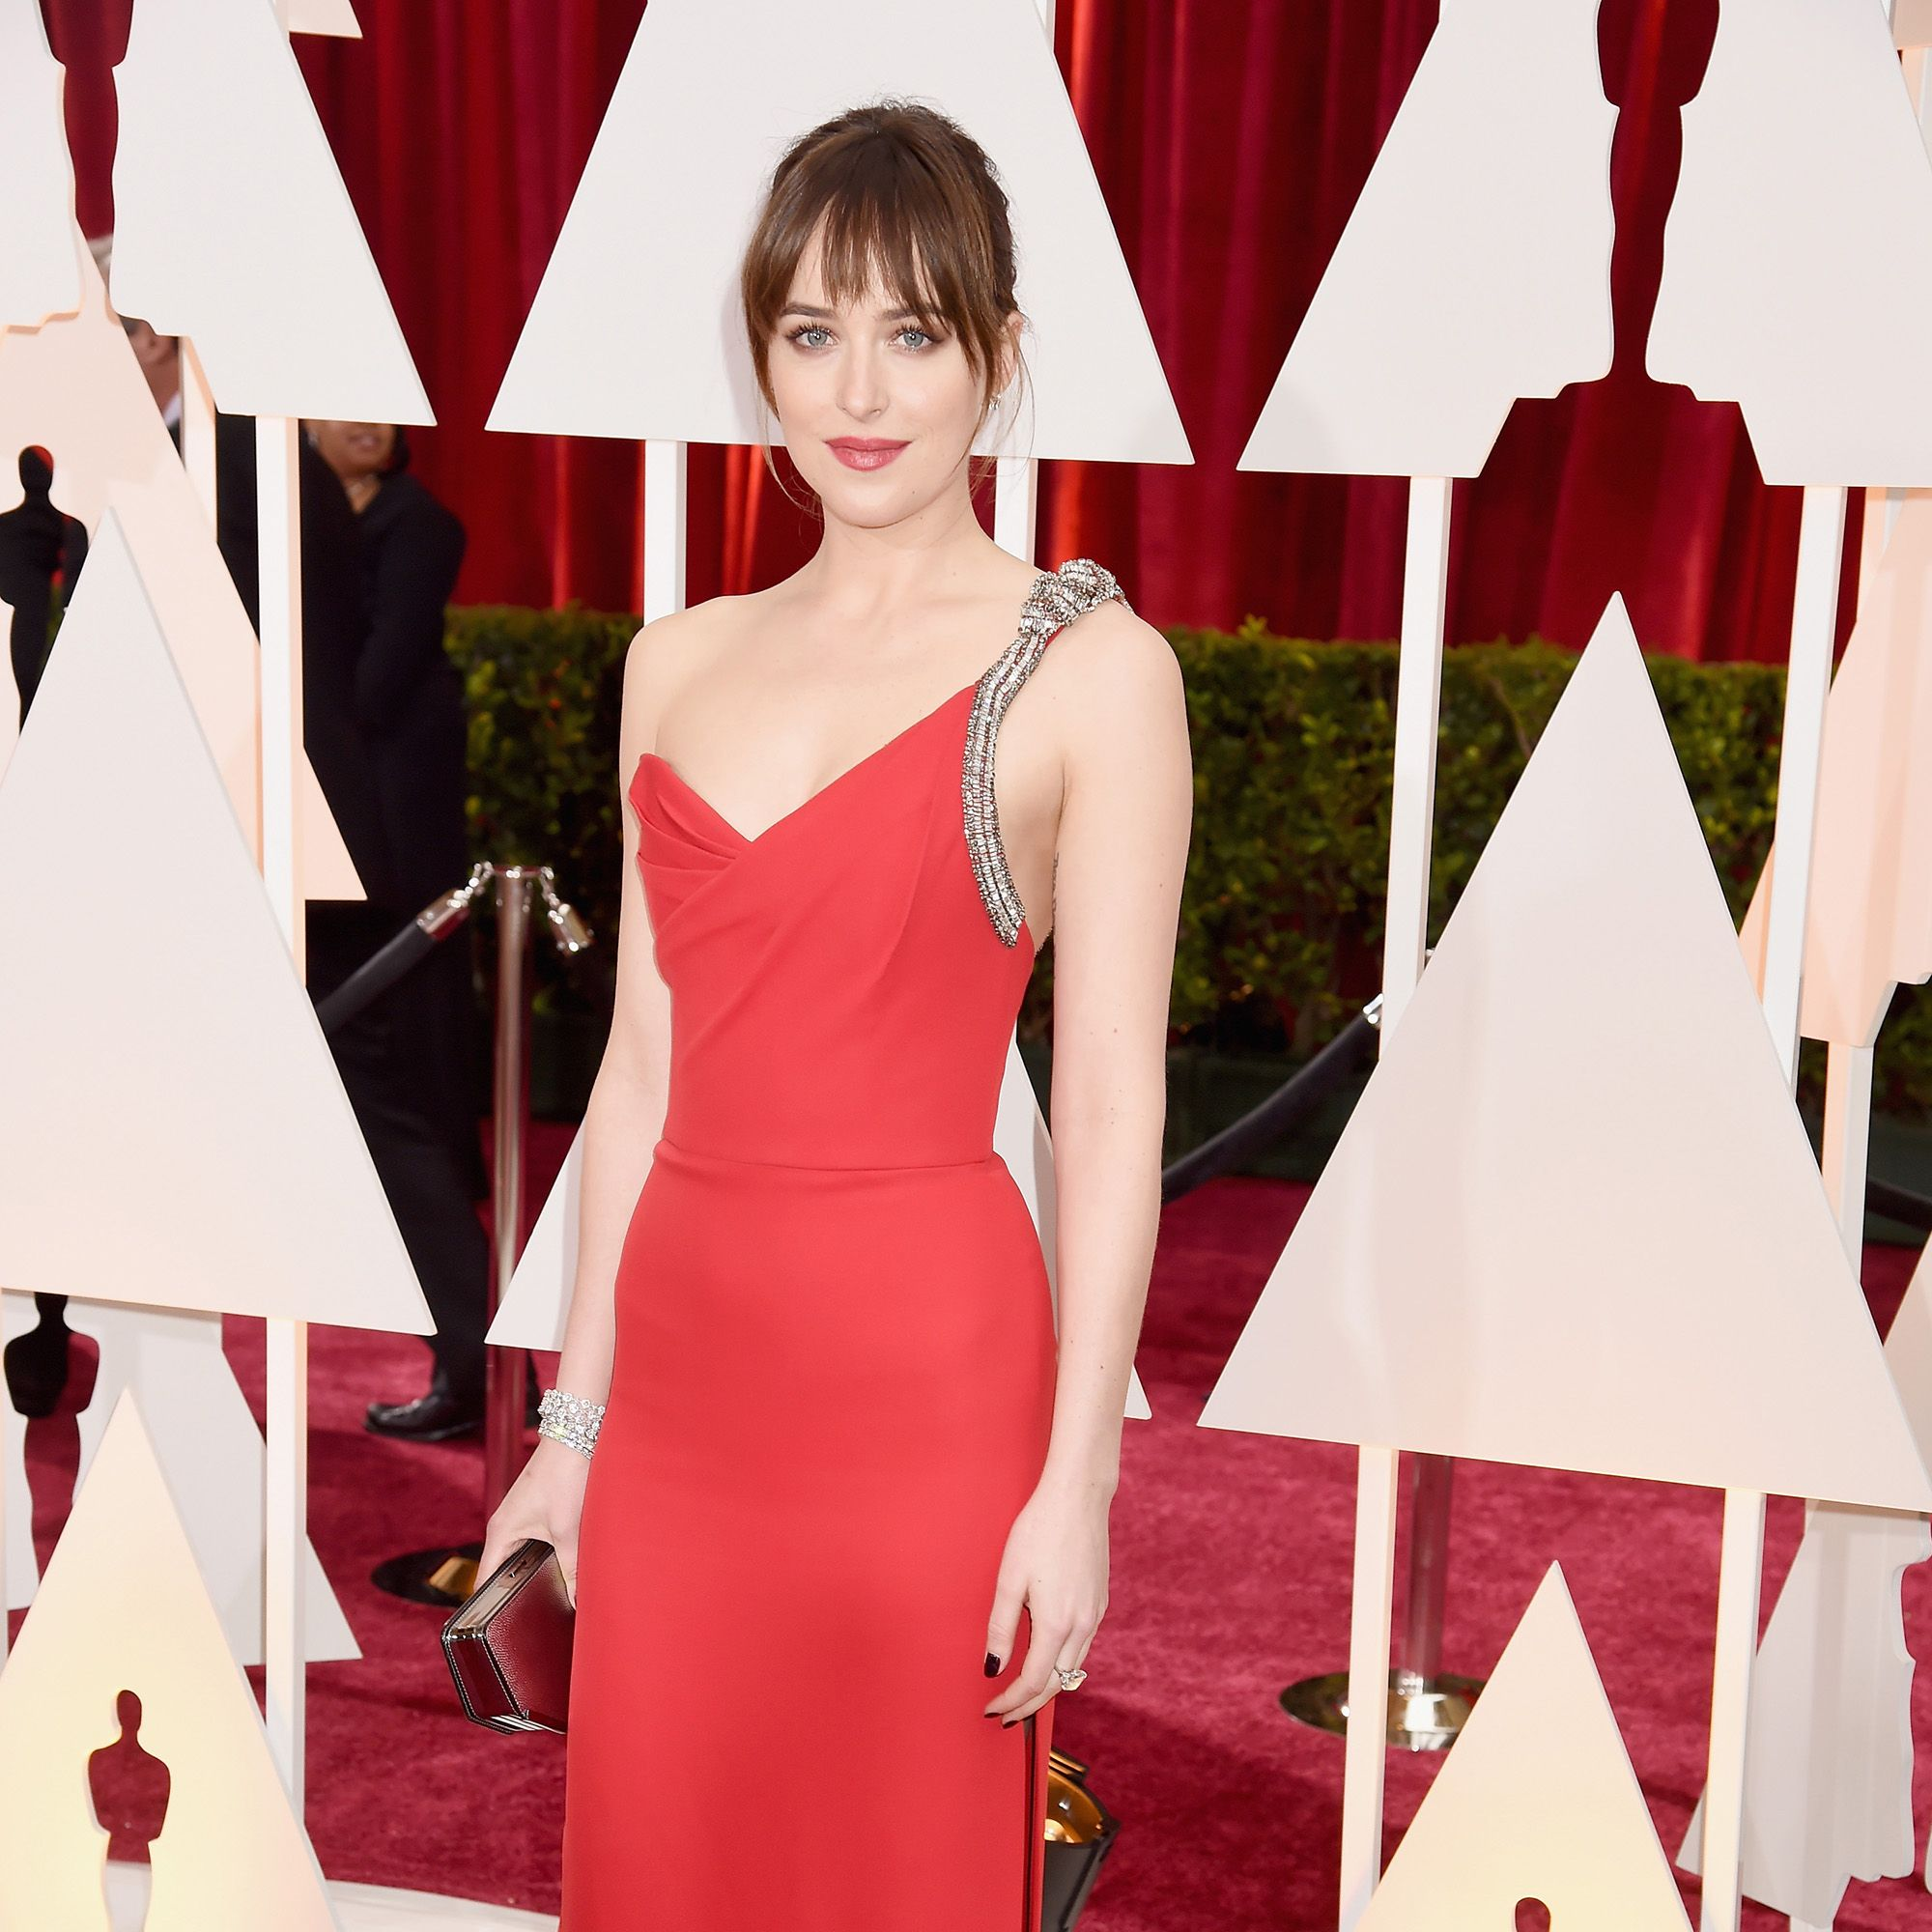 HOLLYWOOD, CA - FEBRUARY 22: Actress Dakota Johnson attends the 87th Annual Academy Awards at Hollywood &amp&#x3B; Highland Center on February 22, 2015 in Hollywood, California.  (Photo by Jeff Kravitz/FilmMagic)